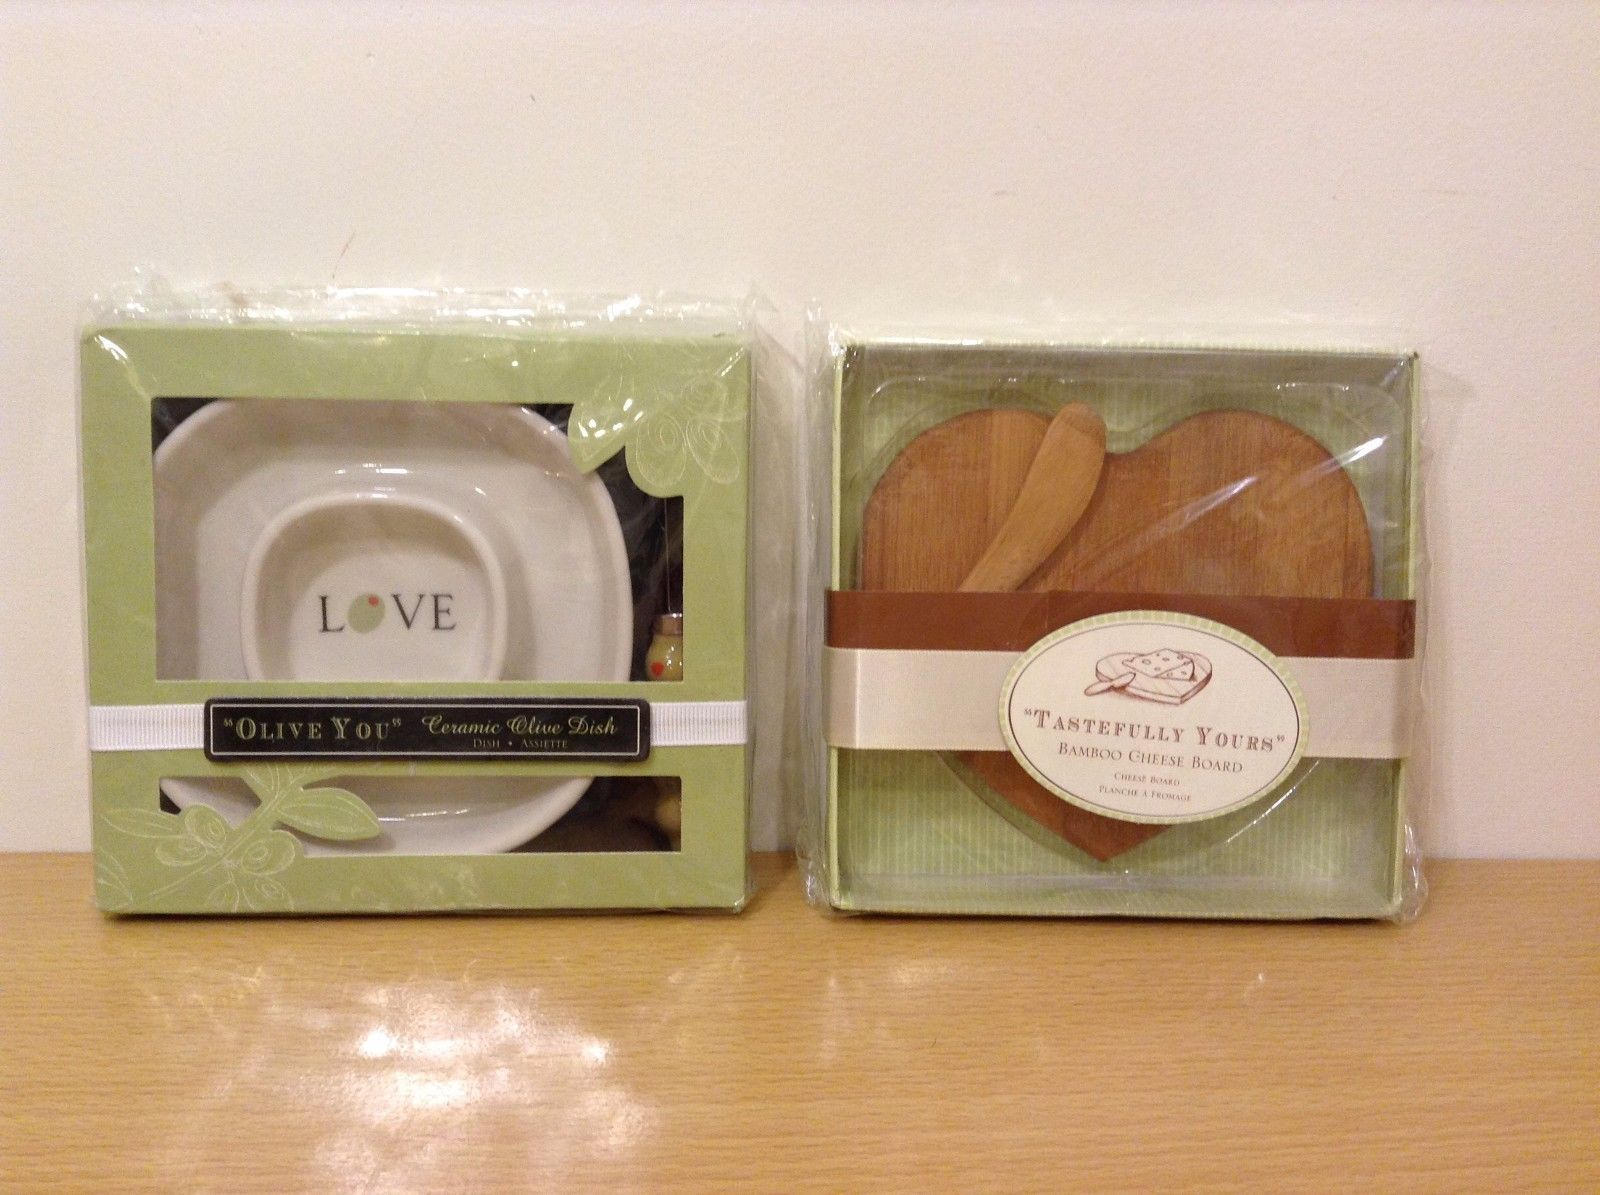 Lot of 2 Ceramic Olive Dish Bamboo Cheese Board New Kate Aspen Design Heart